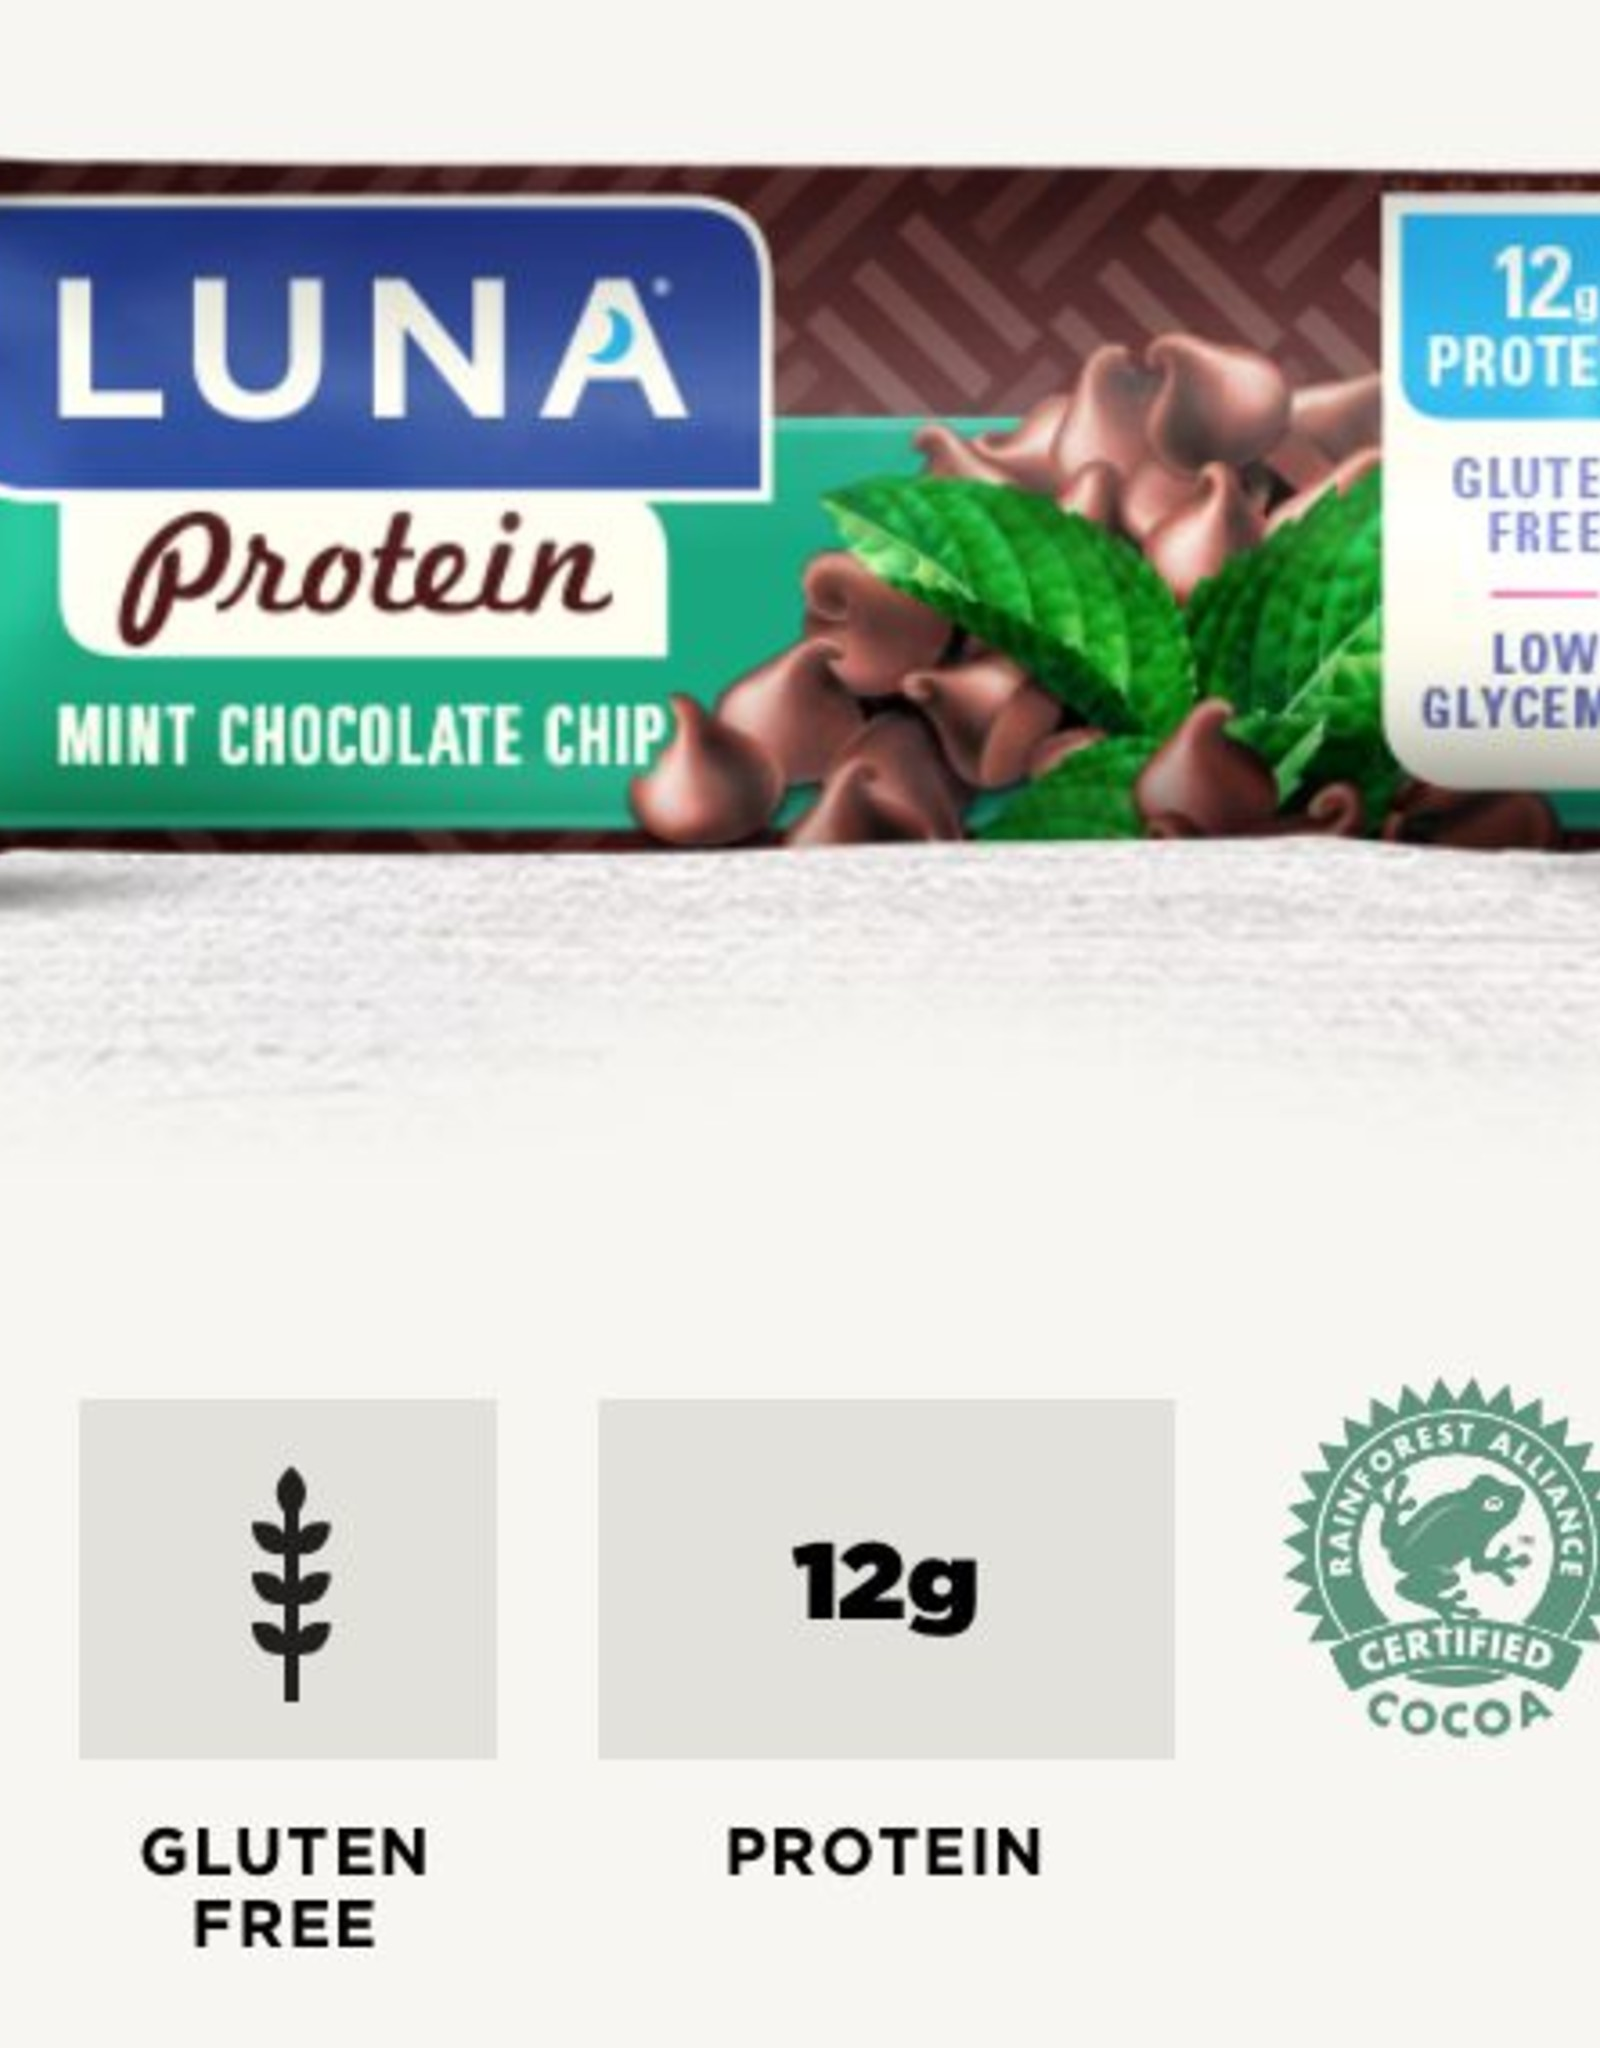 Clif Luna Protein Mint Chocolate Chip Bike Stop Cafe Outpost